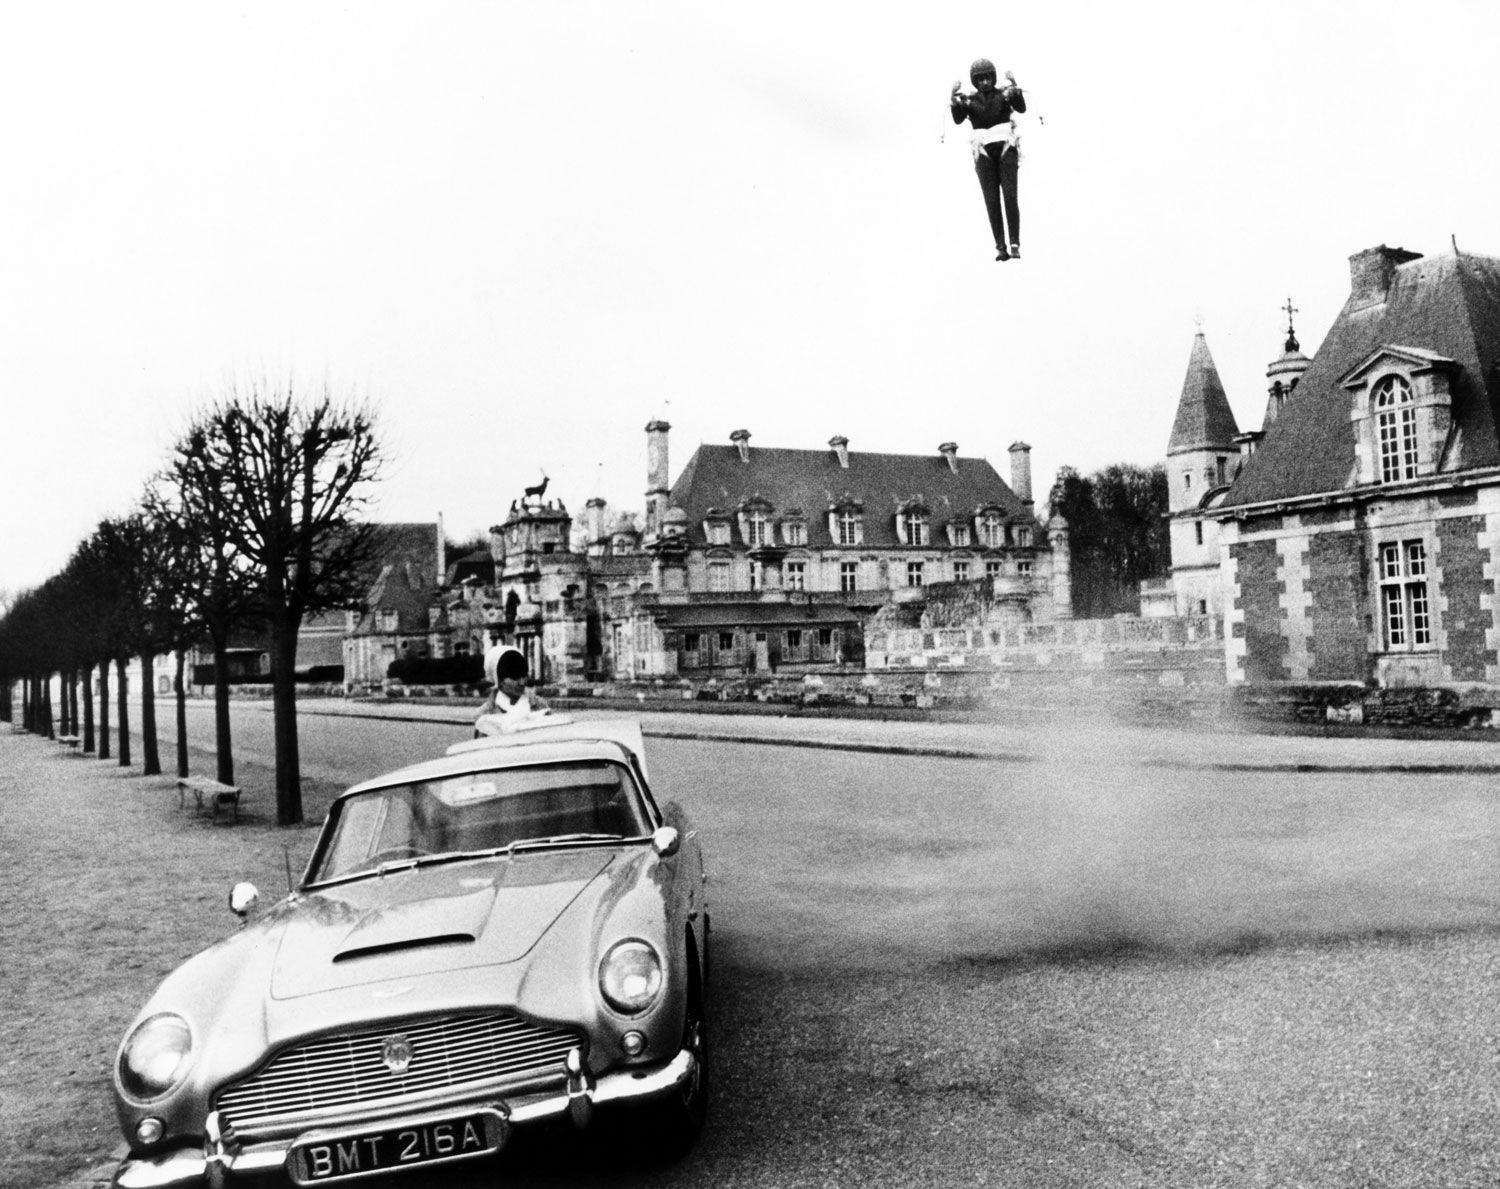 """Thunderball (1965) – Aston Martin DB5 - The Driver: Goldfingerwas a huge success, and Connery was soon back in Pinewood Studios to film quick follow-up. Still stellar, though.The Car: Aston Martin began calling the DB5 """"The most famous car in the world,"""" and Bond could hardly afford to be seen in anything less.The Evolutionary Leap: Not much—it's hard to improve on Sean Connery in a growling DB5with a 4-liter, Weber-carbed inline-six."""